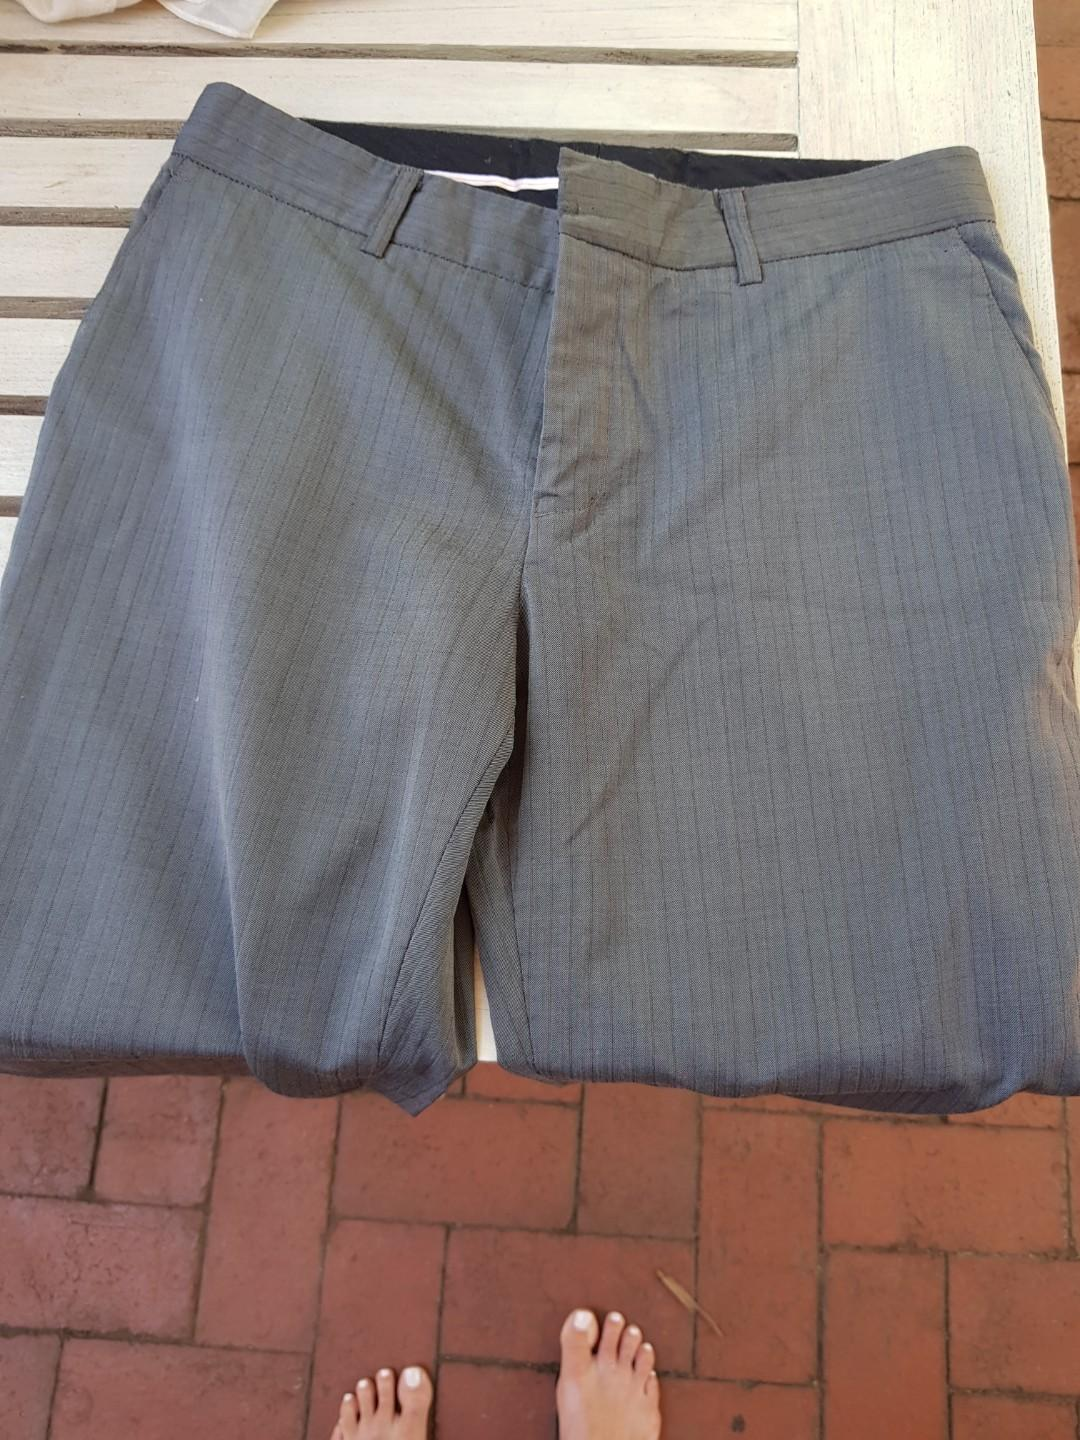 Farage grey suit pants. Size 8